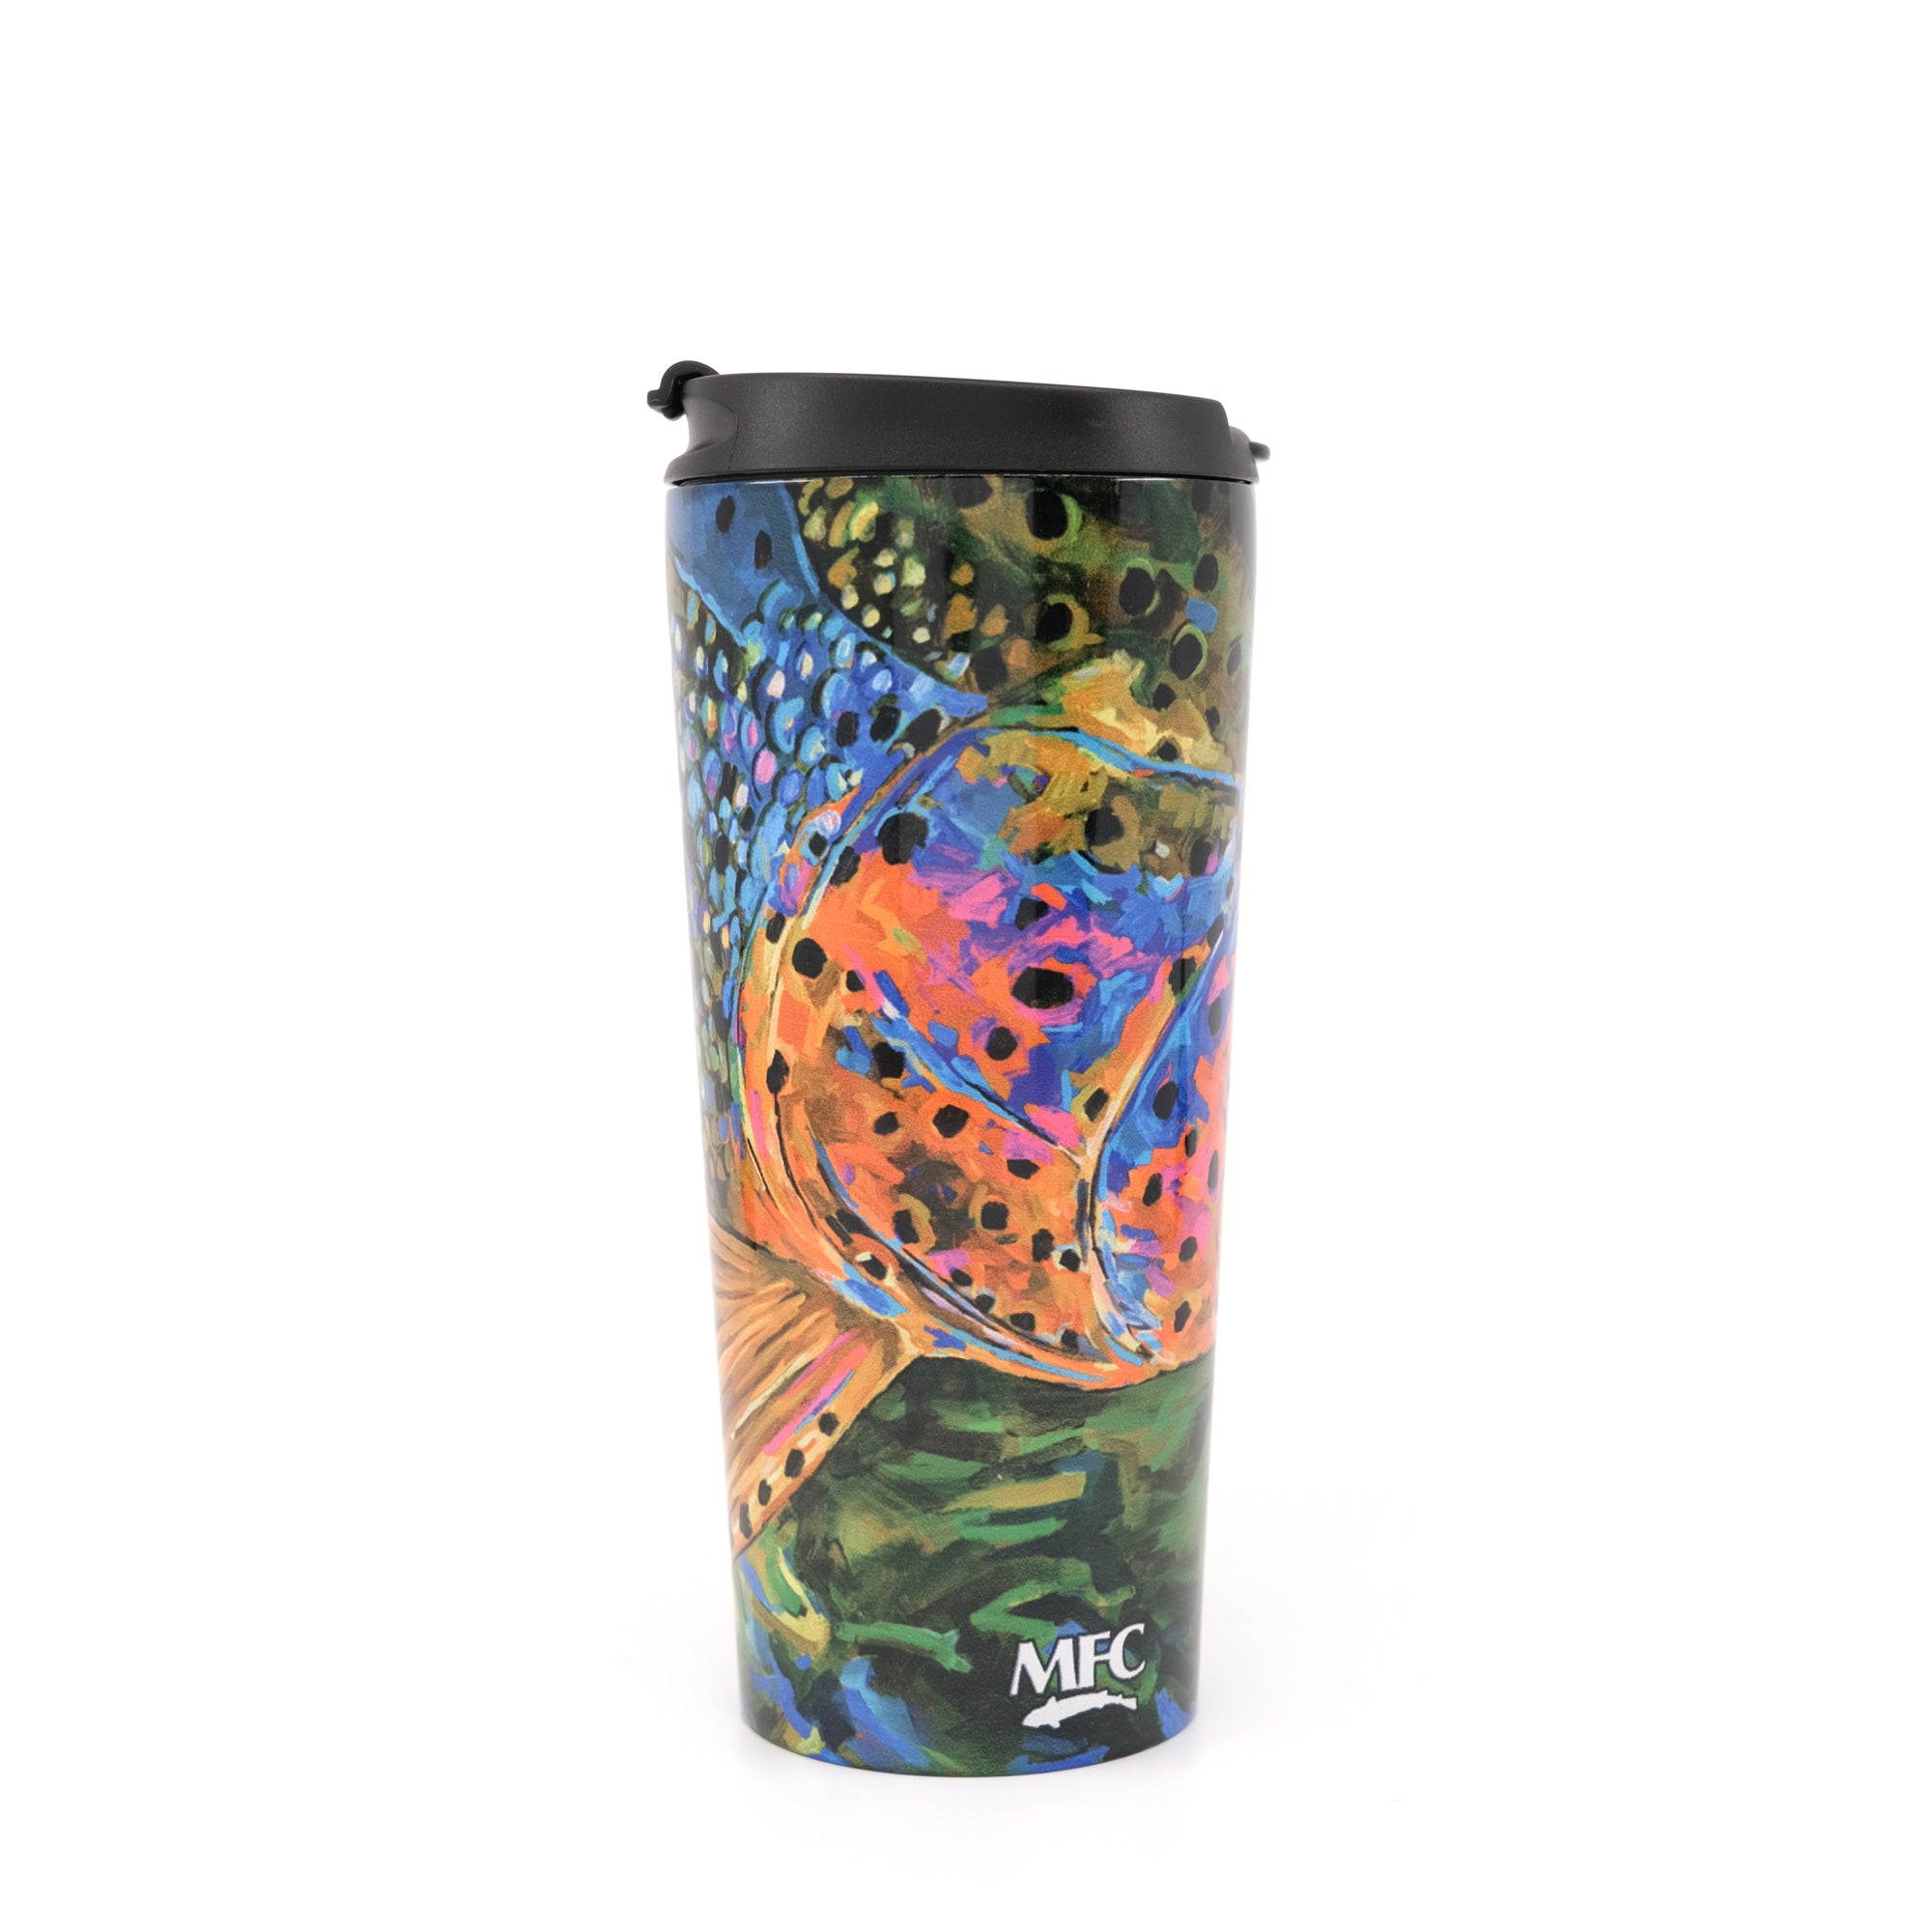 MFC Travel Mug - Udesen's Keep 'Em Wet